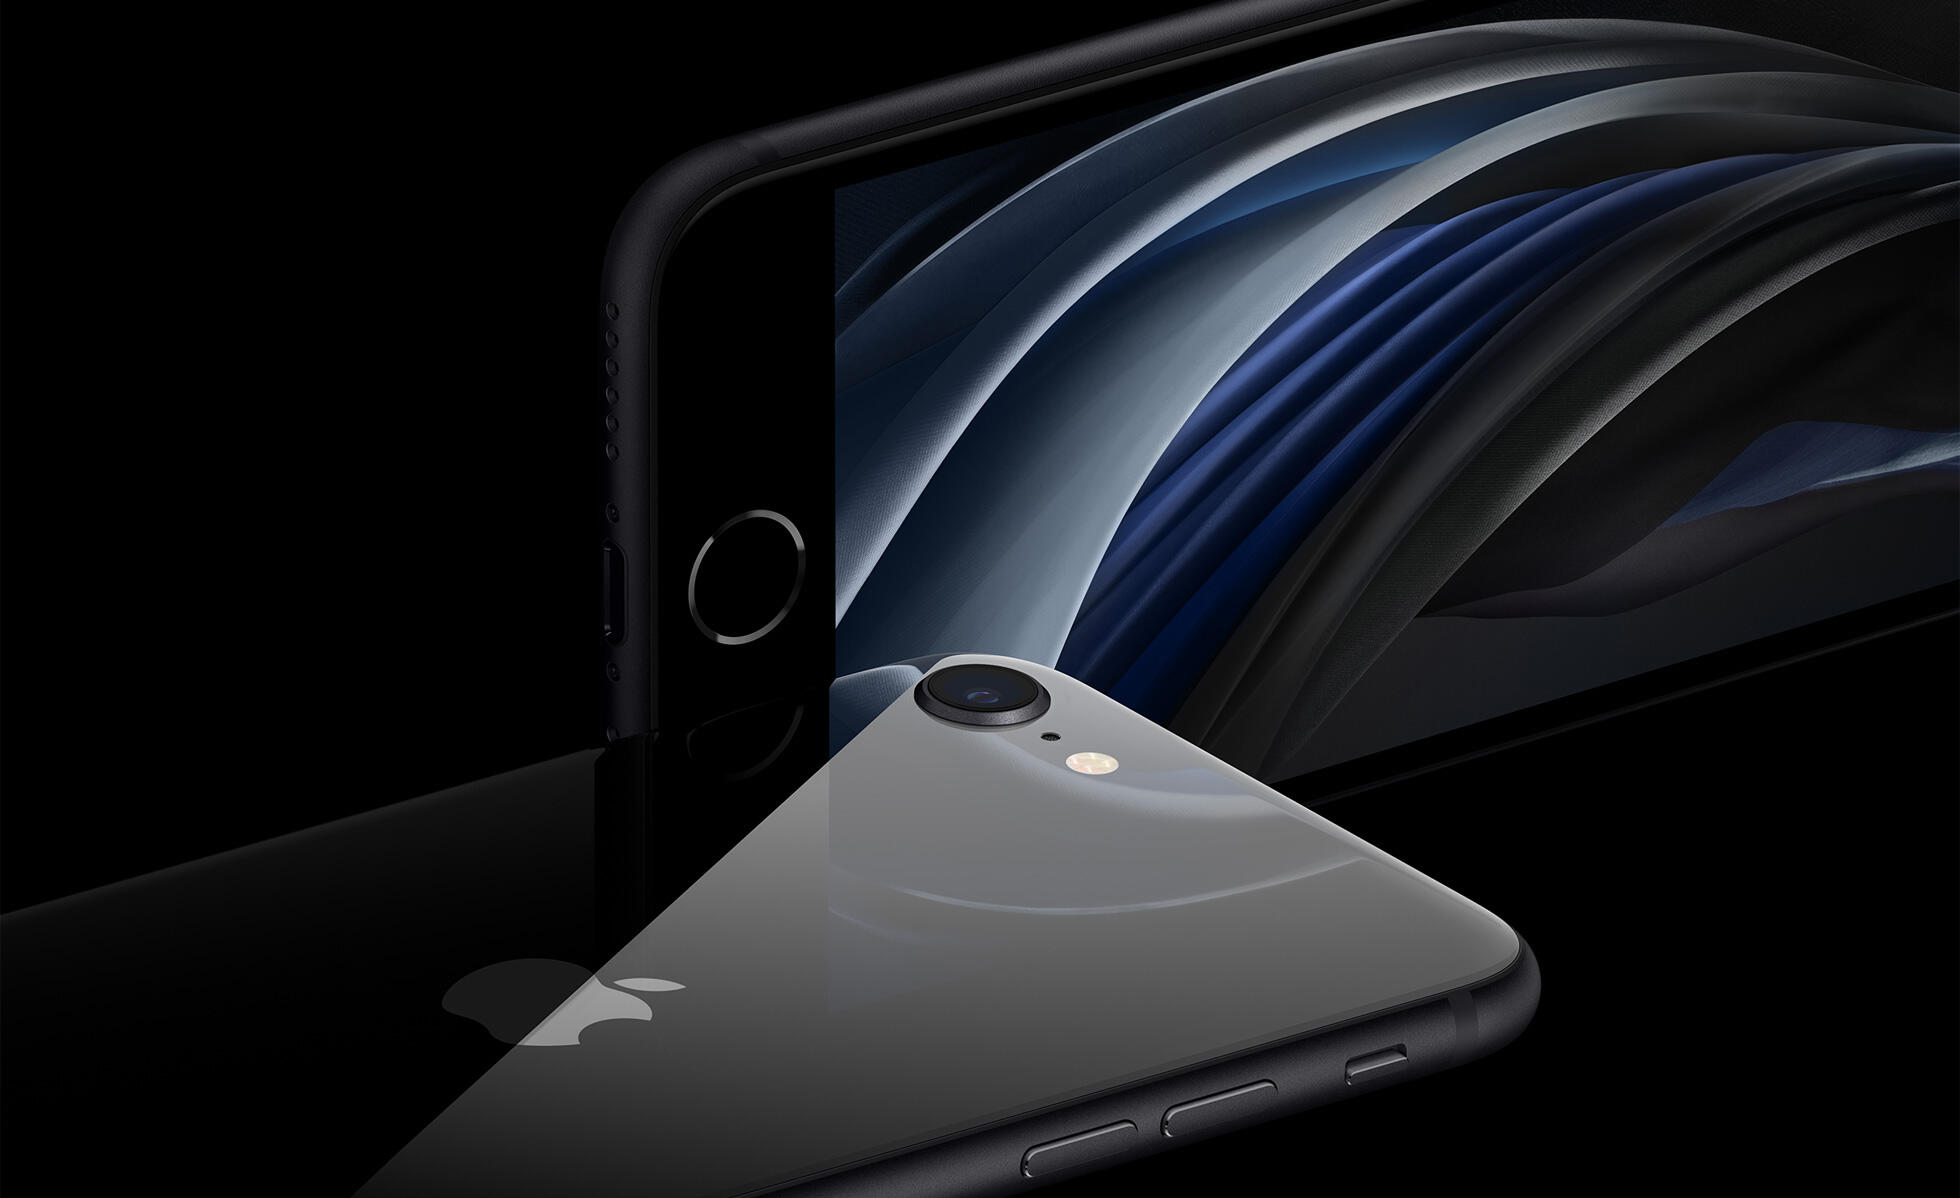 apple-new-iphone-se-black-camera-and-touch-id-04152020